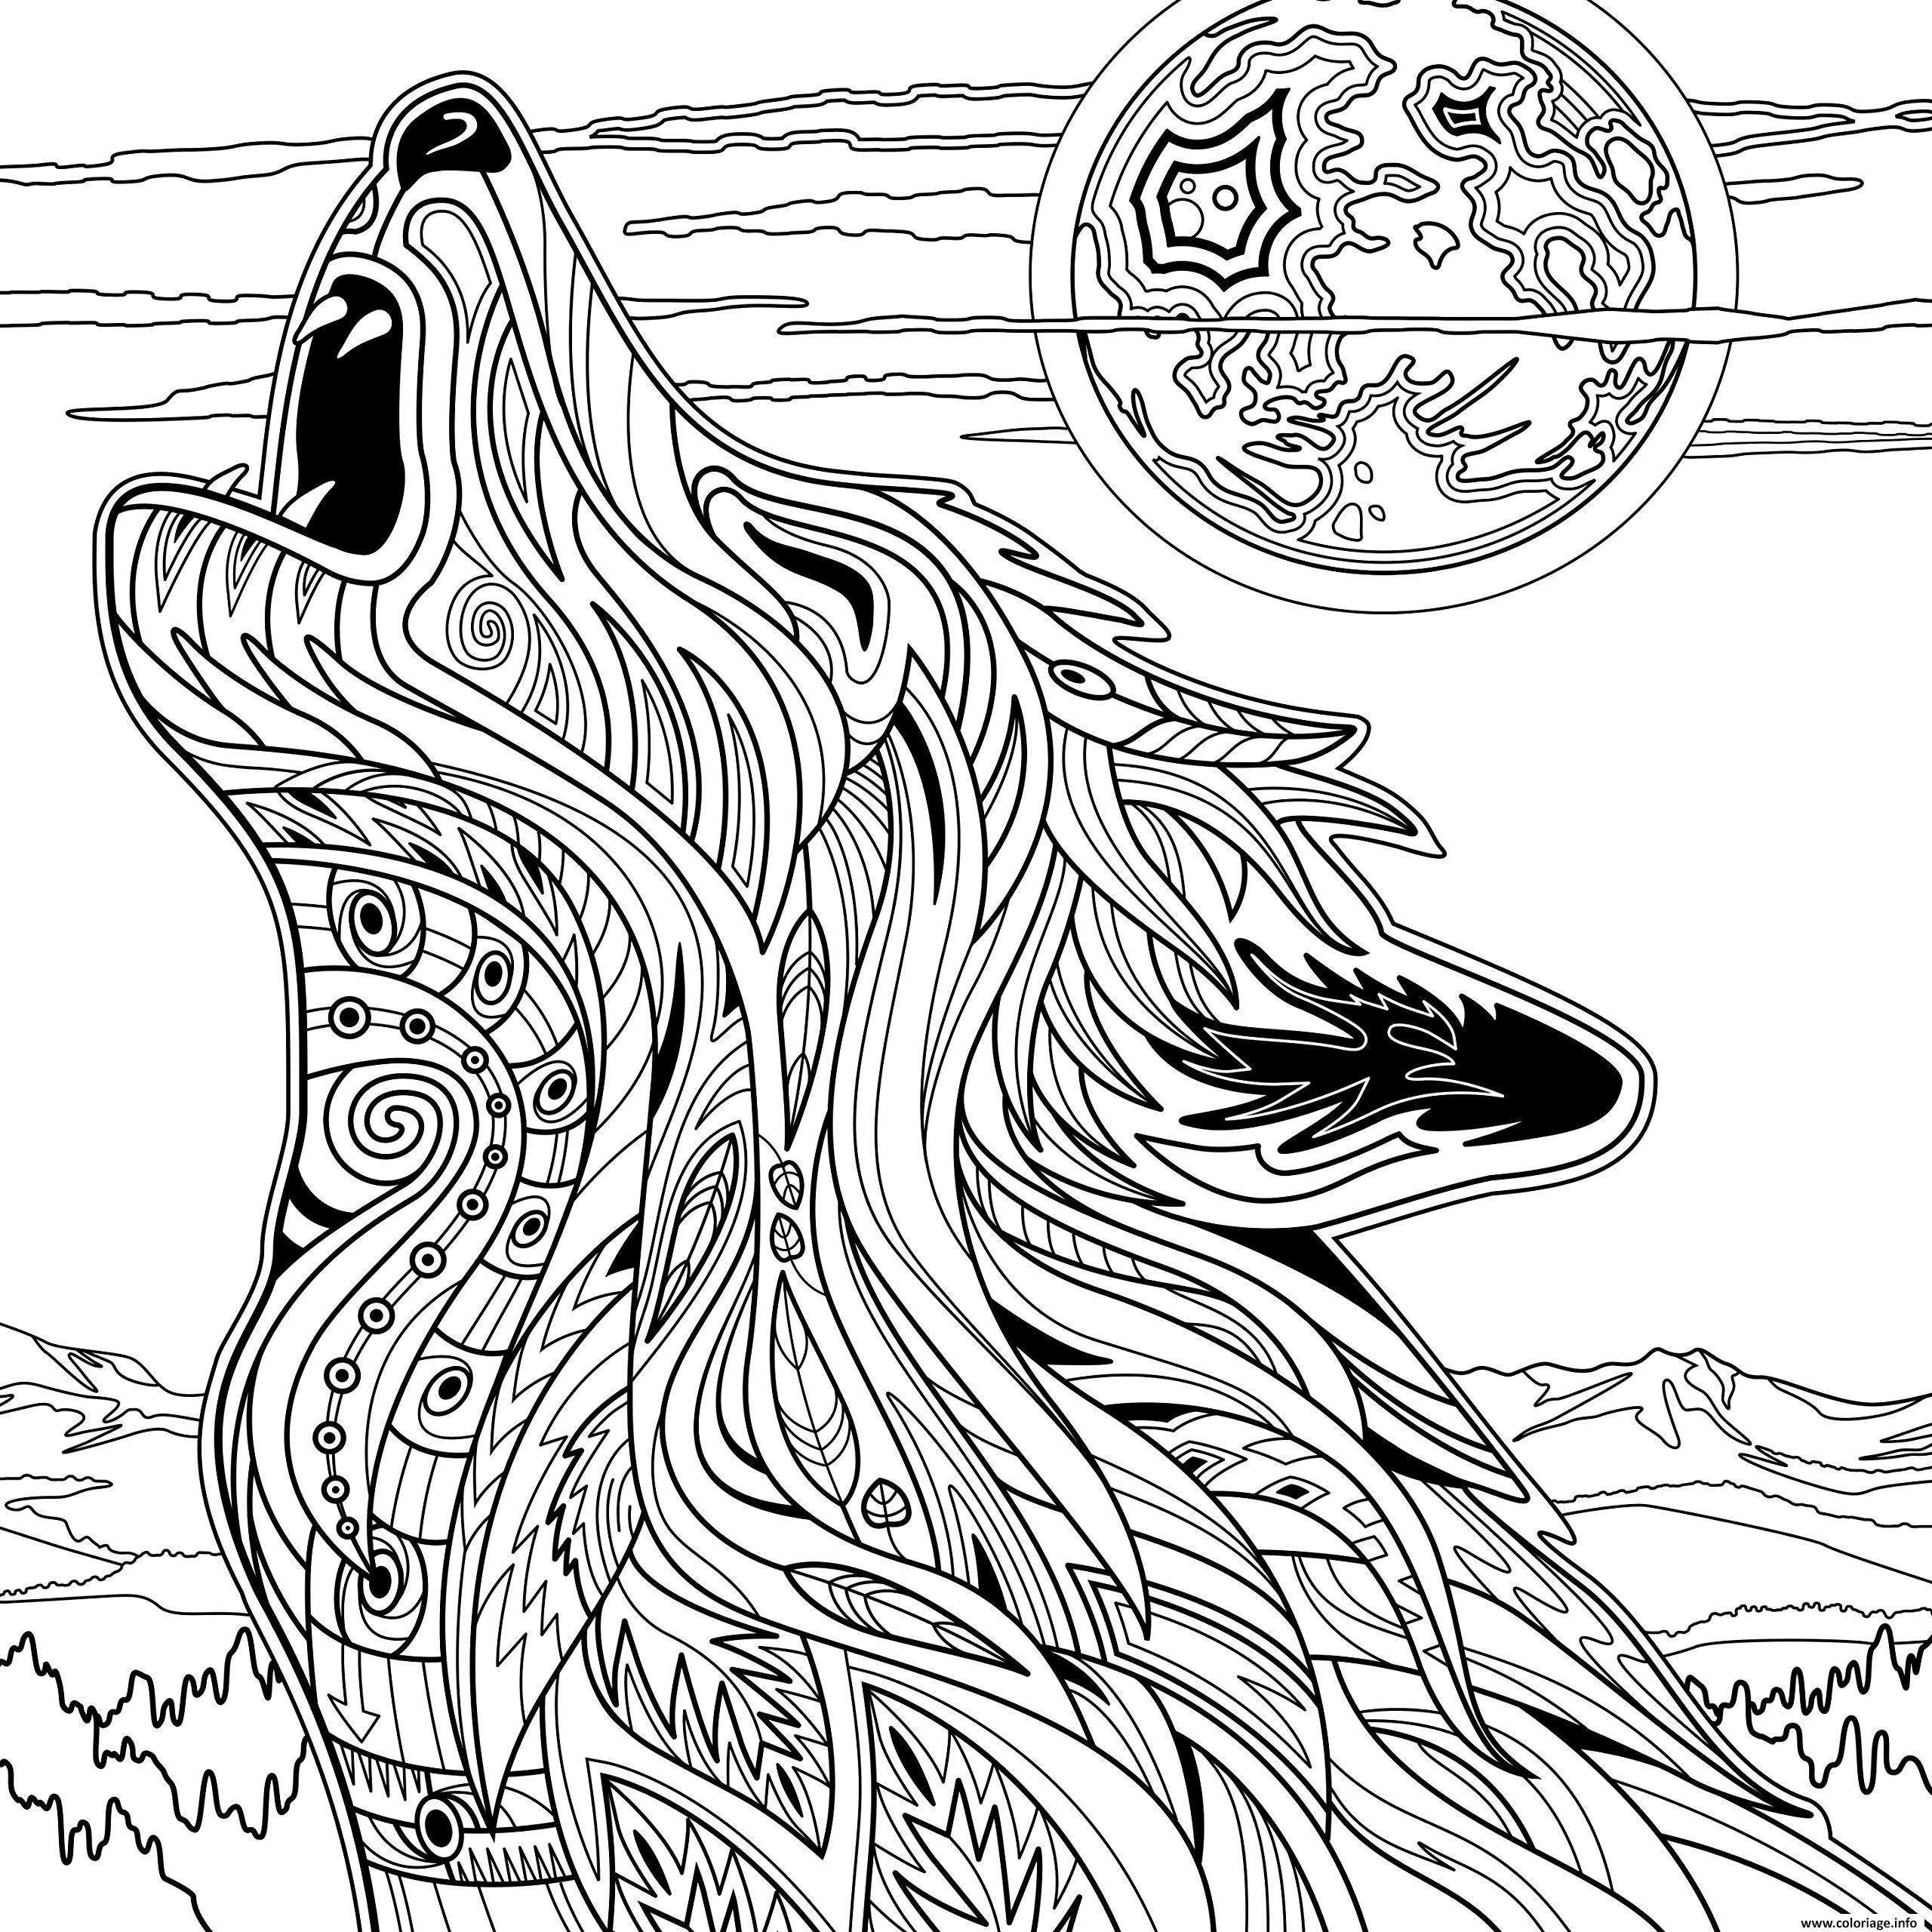 Coloriage Adulte Loup Animaux Yellowstone National Park